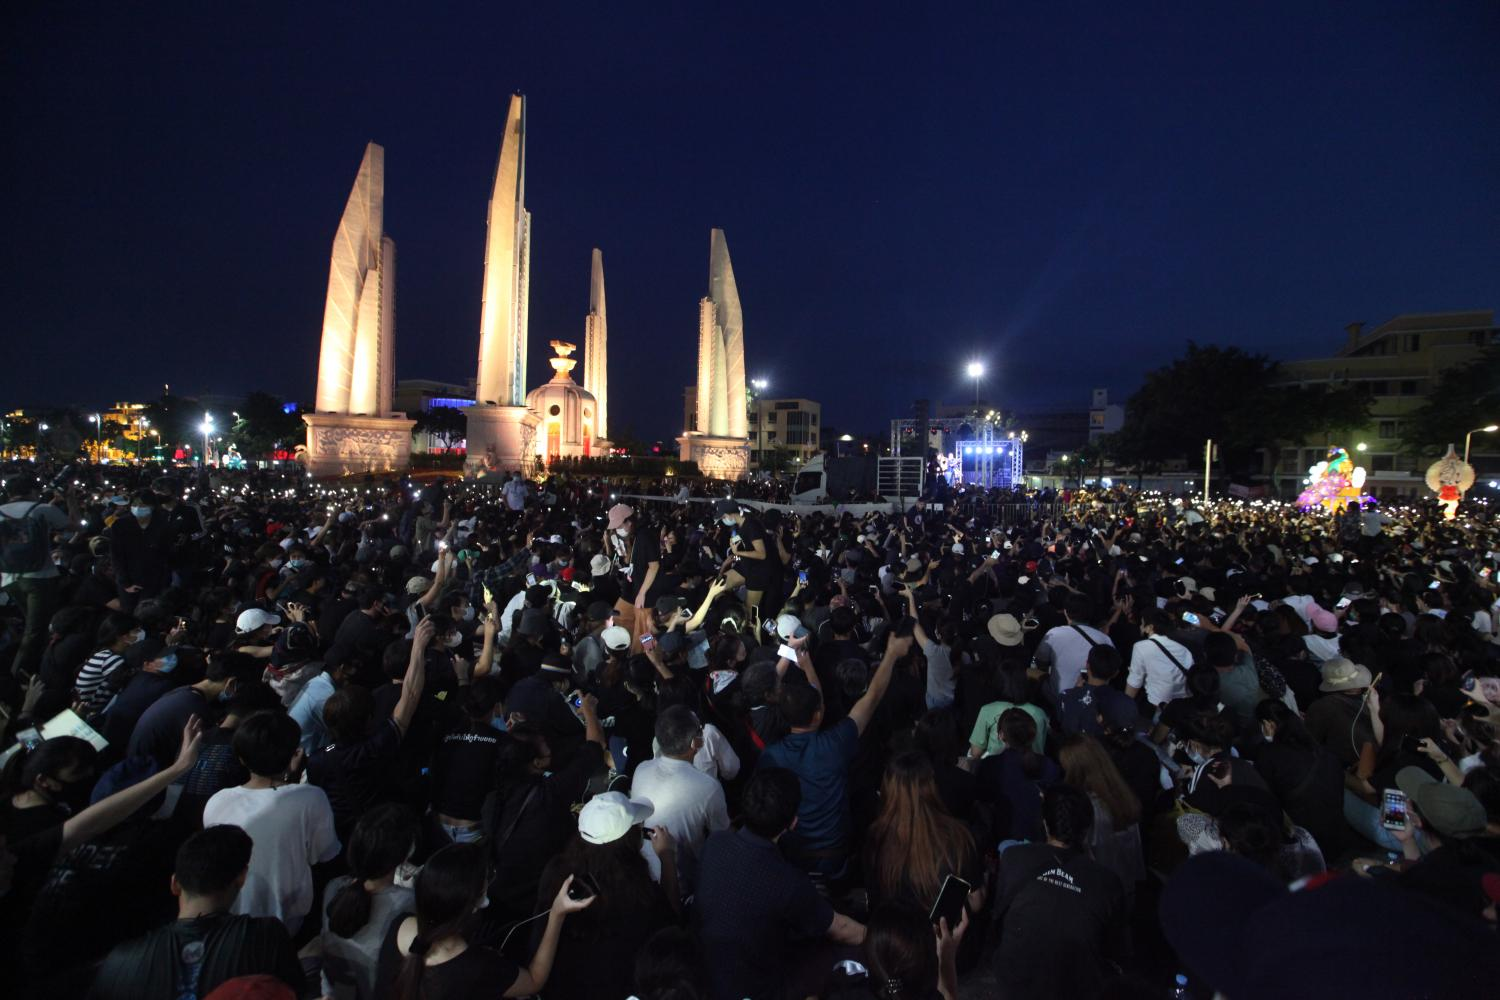 Anti-government demonstrators led by the Free People group gather at the Democracy Monument on Ratchadamnoen Avenue. The group has demanded the government dissolve parliament, draw up a new constitution and end threats to its critics.